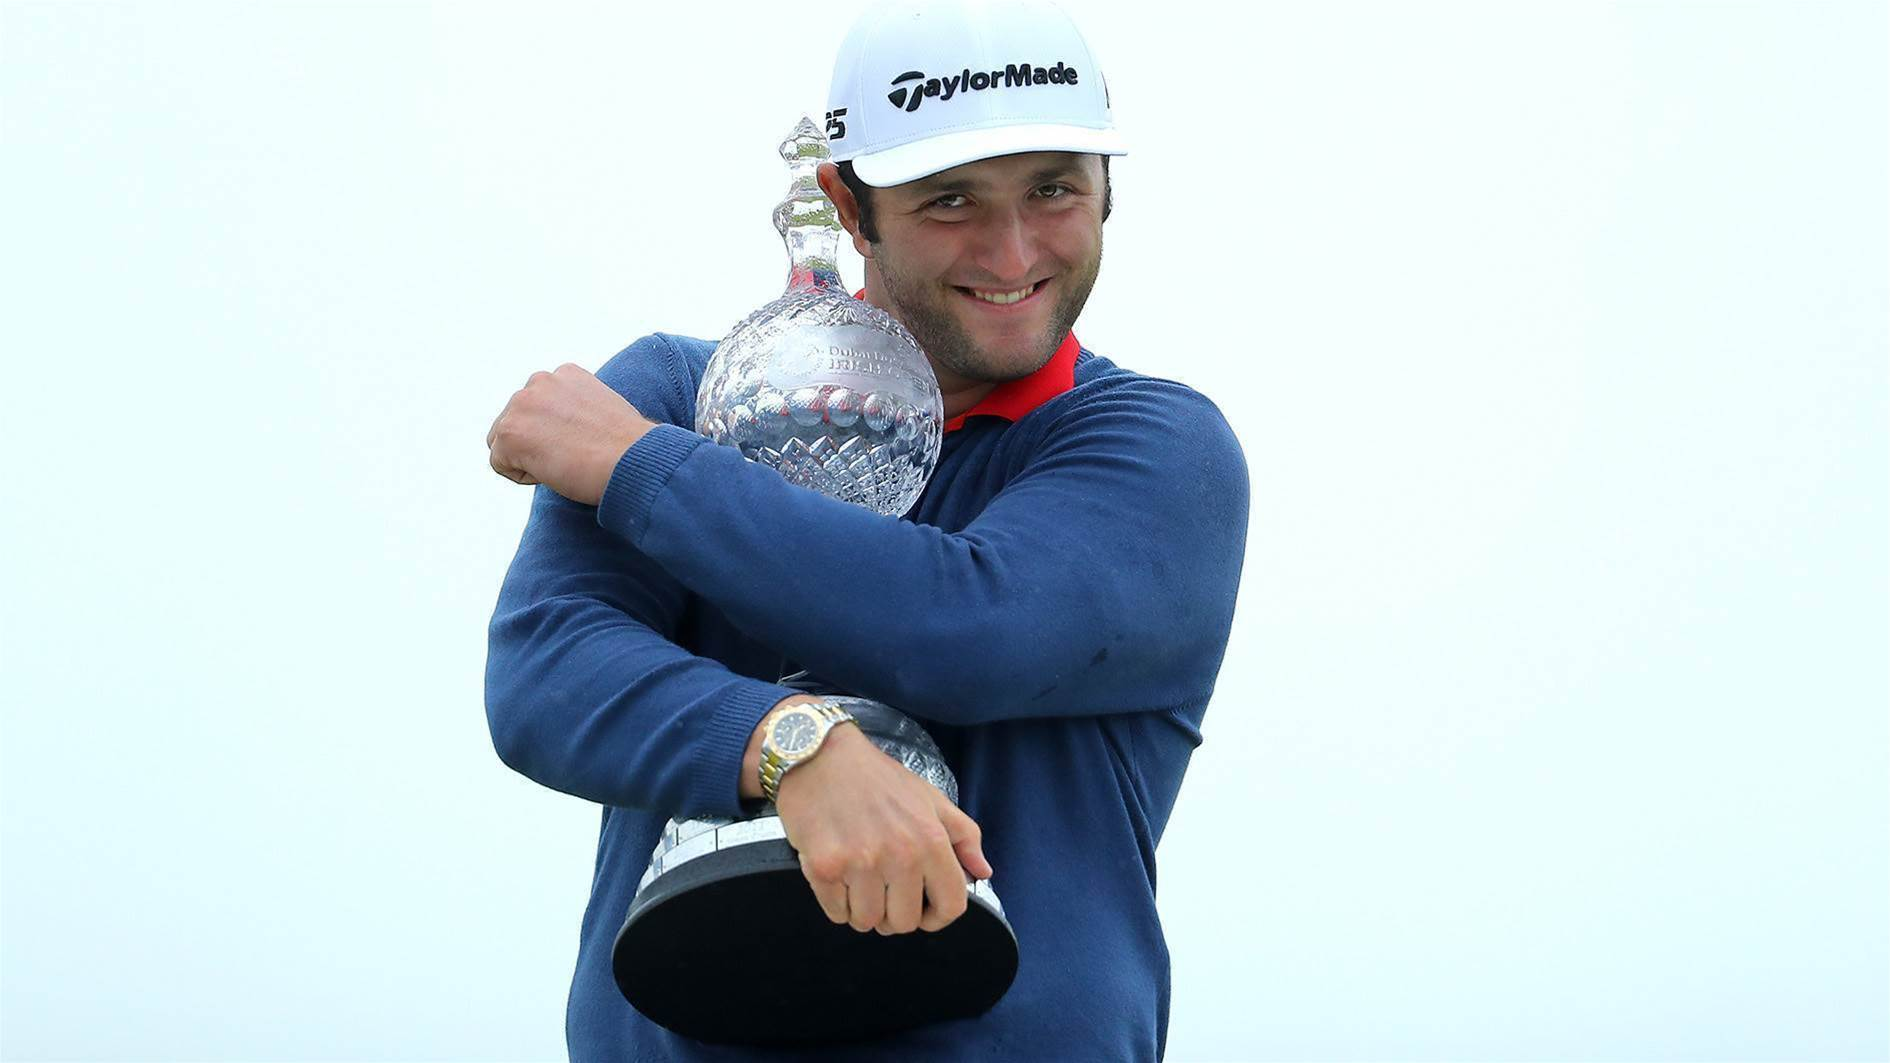 EURO TOUR: Rahm storms to Irish win despite rules scare